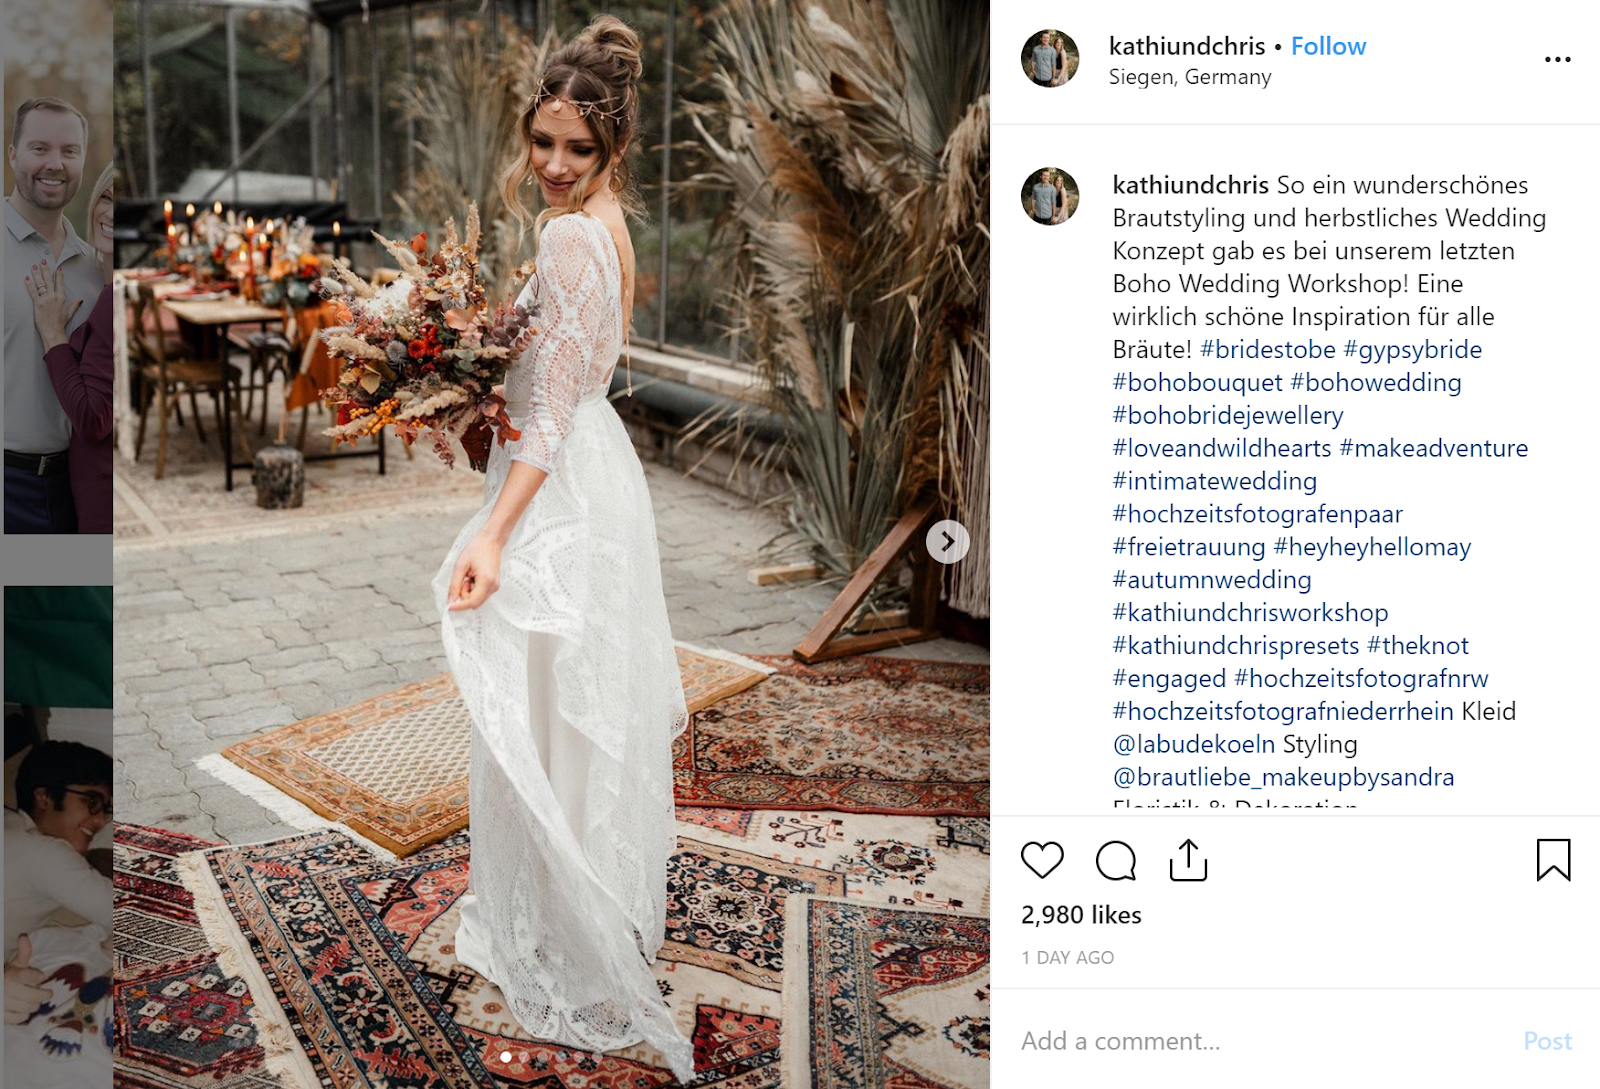 Woman in bridal gown holding flowers instagram marketing carousel post.